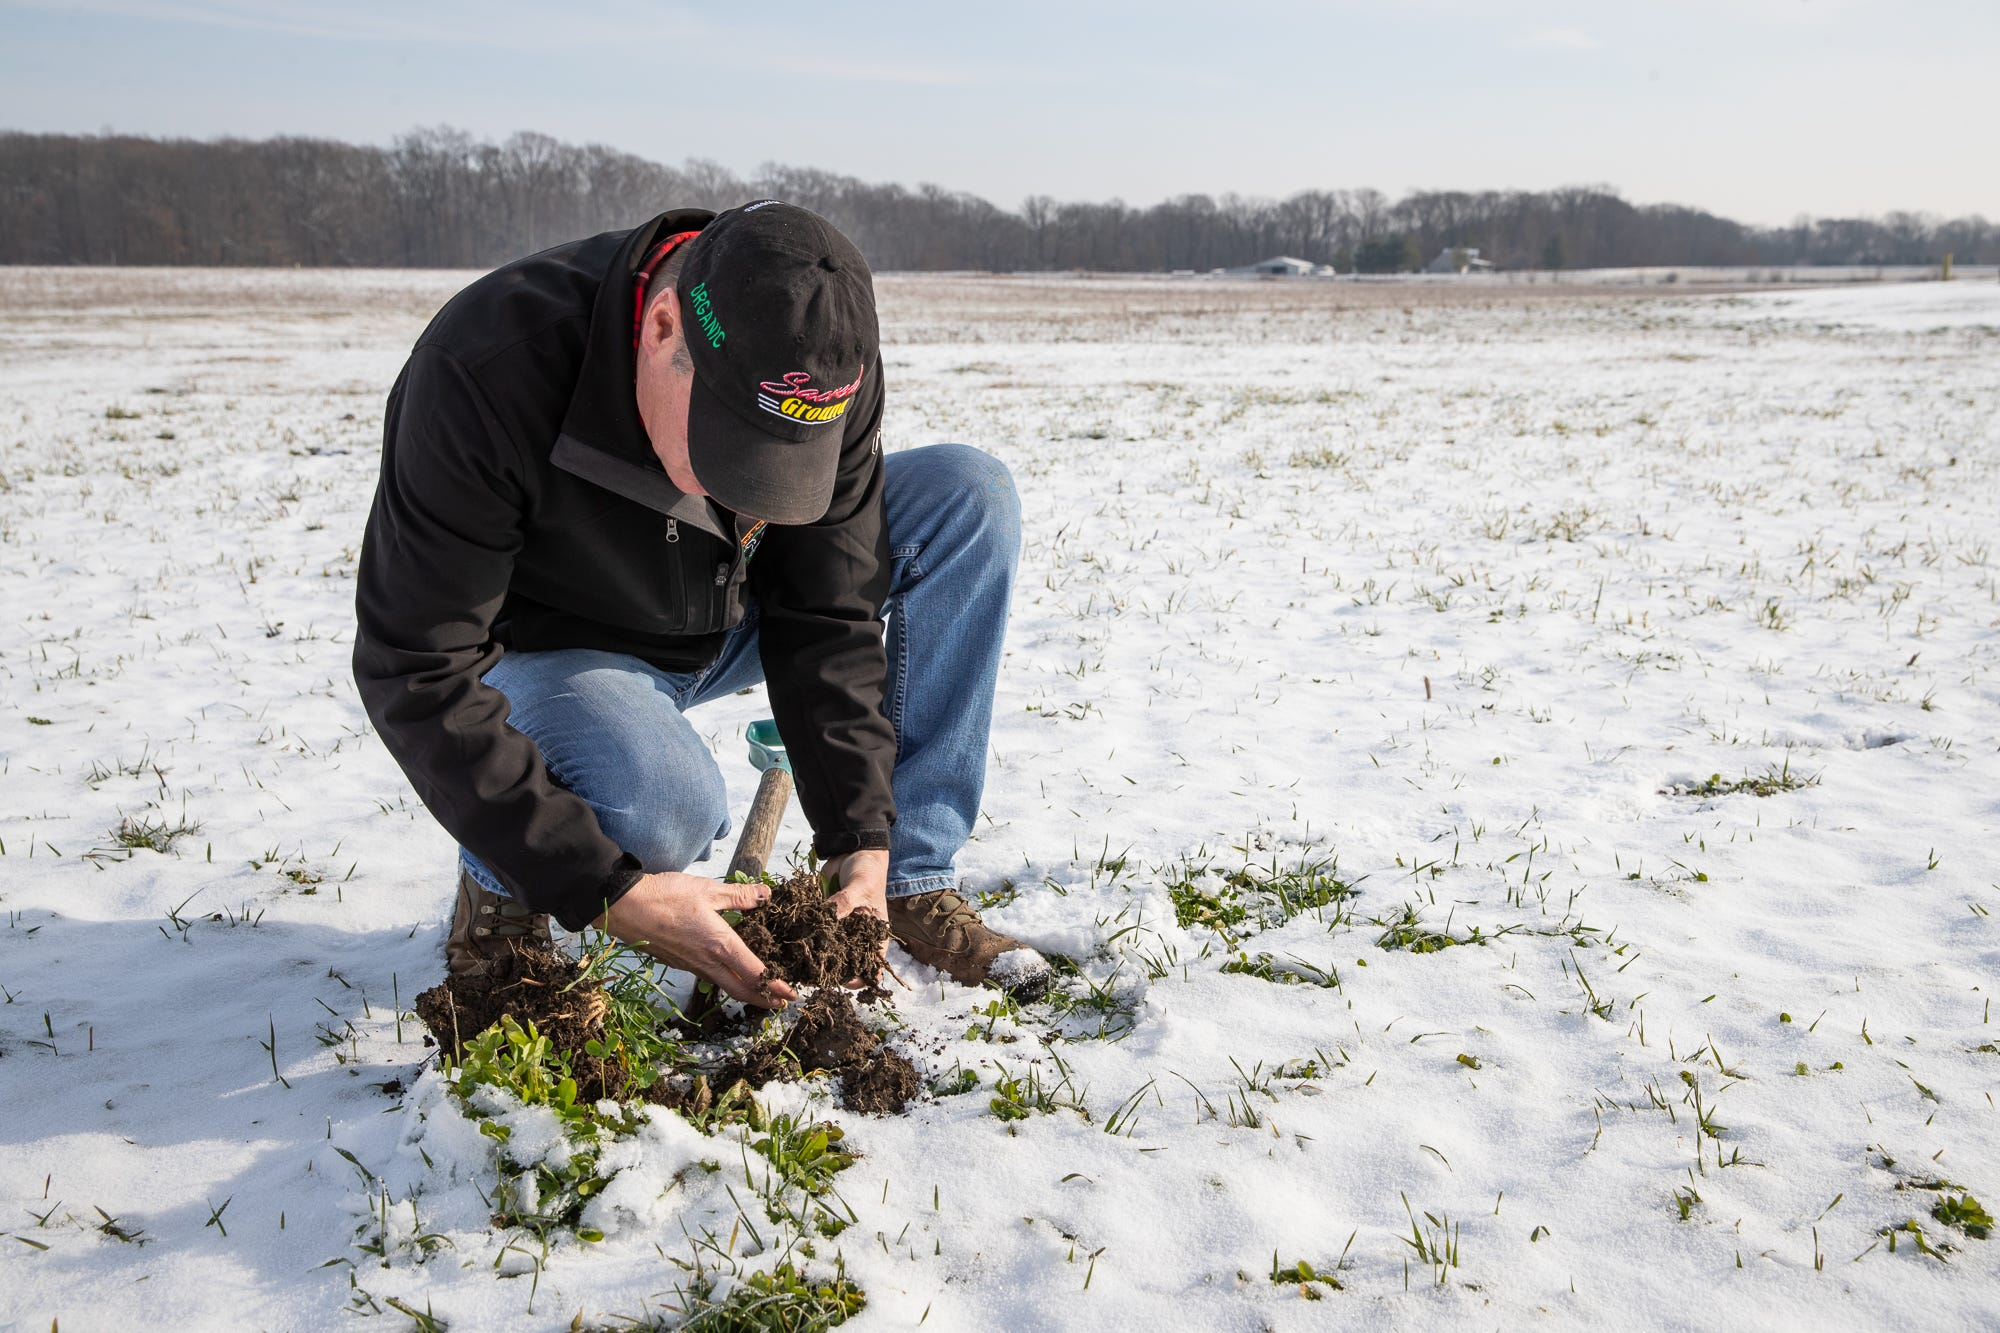 This farmer is saving $800,000 annually by taking away tilling, chemicals